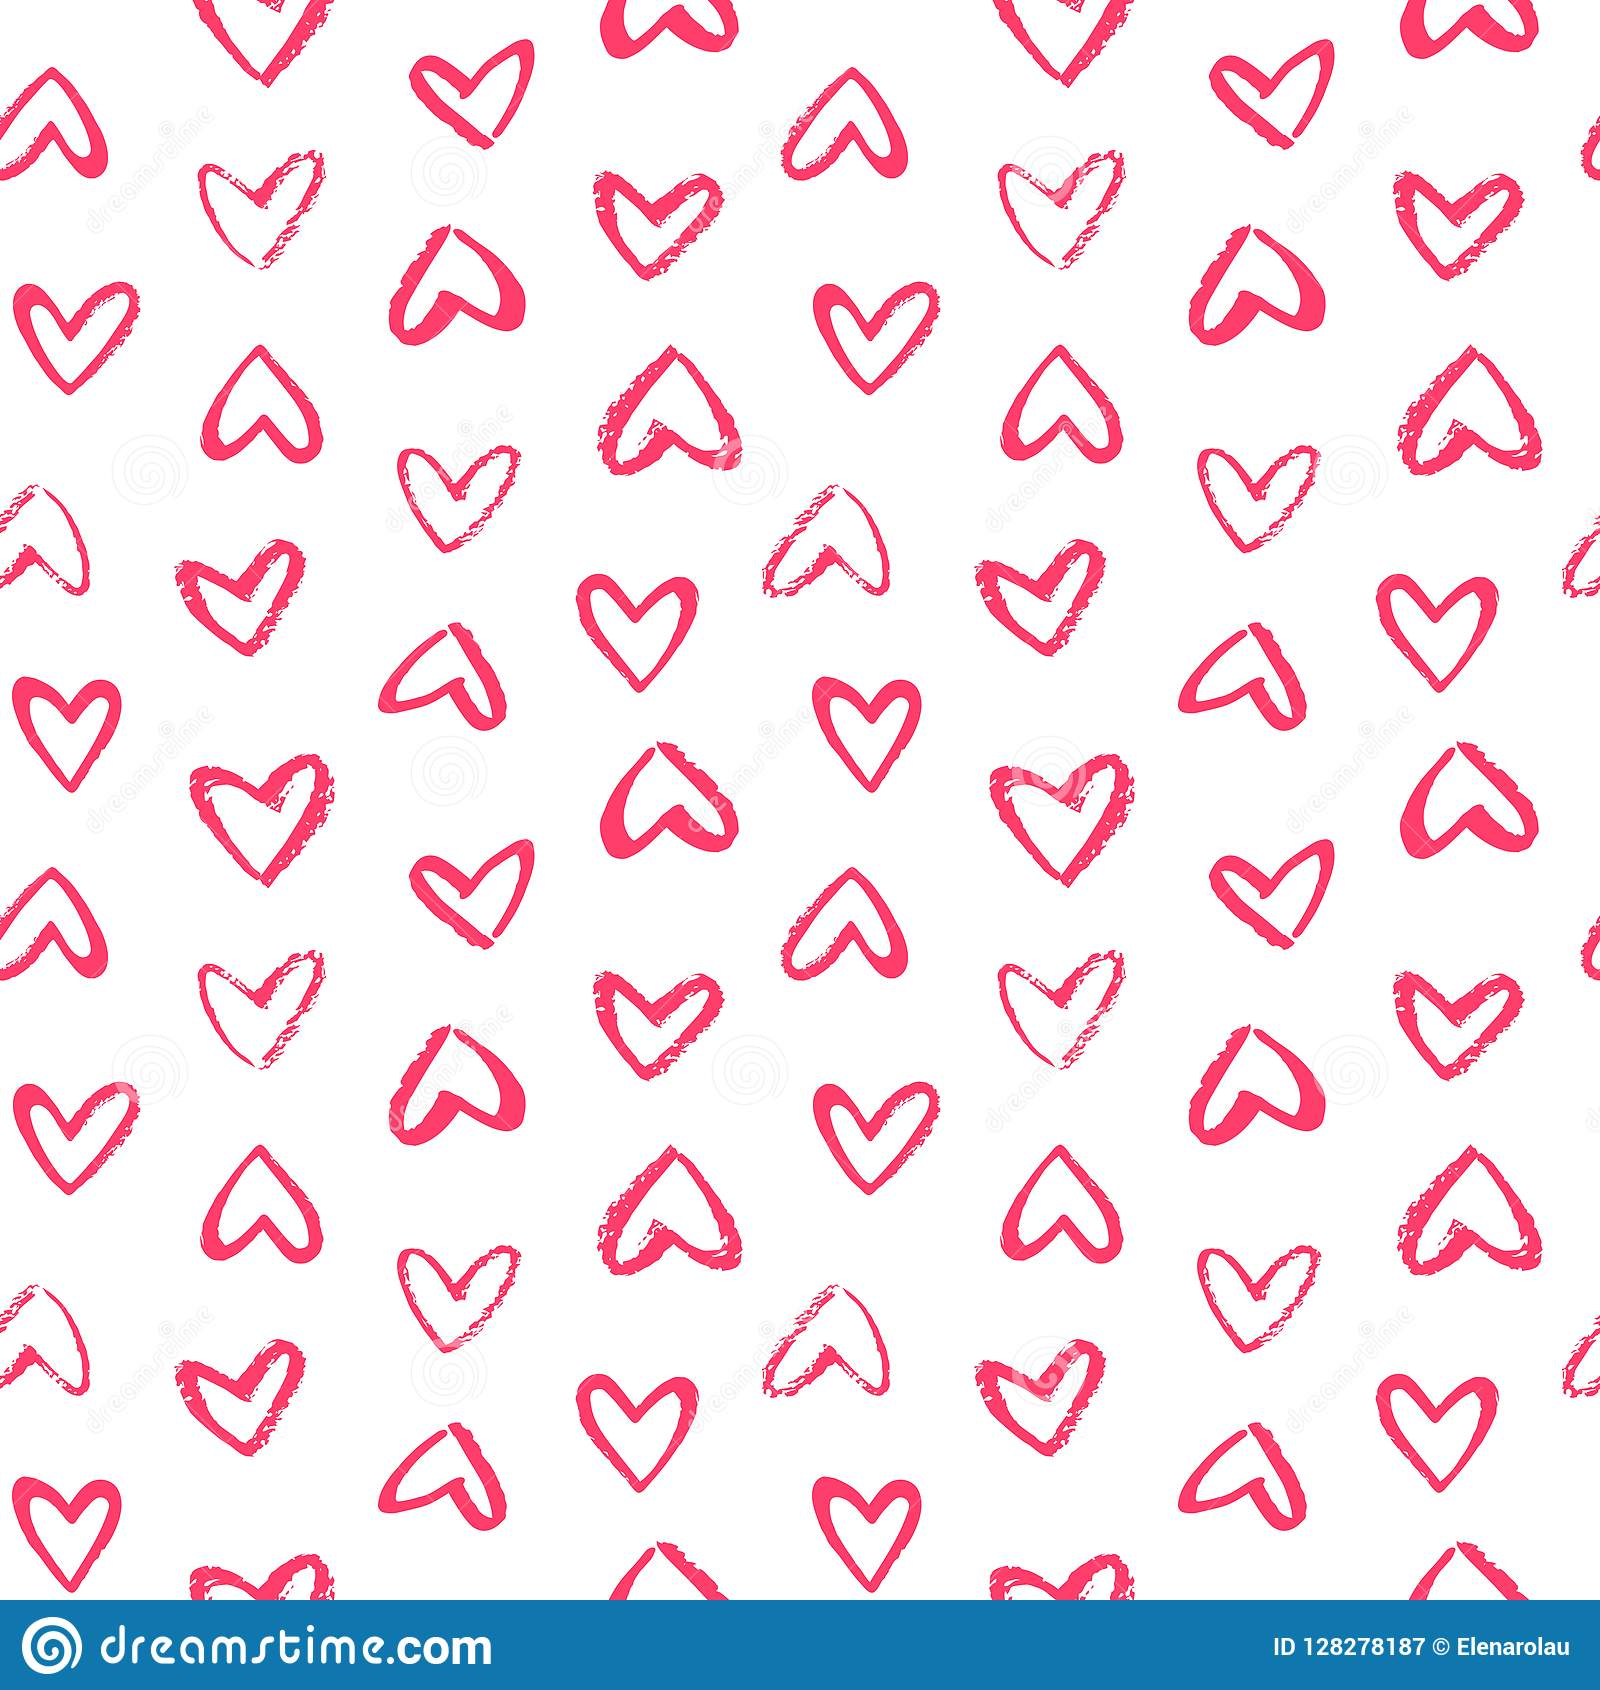 Brush Drawn Doodle Style Hearts Seamless Valentine Day Pattern Stock